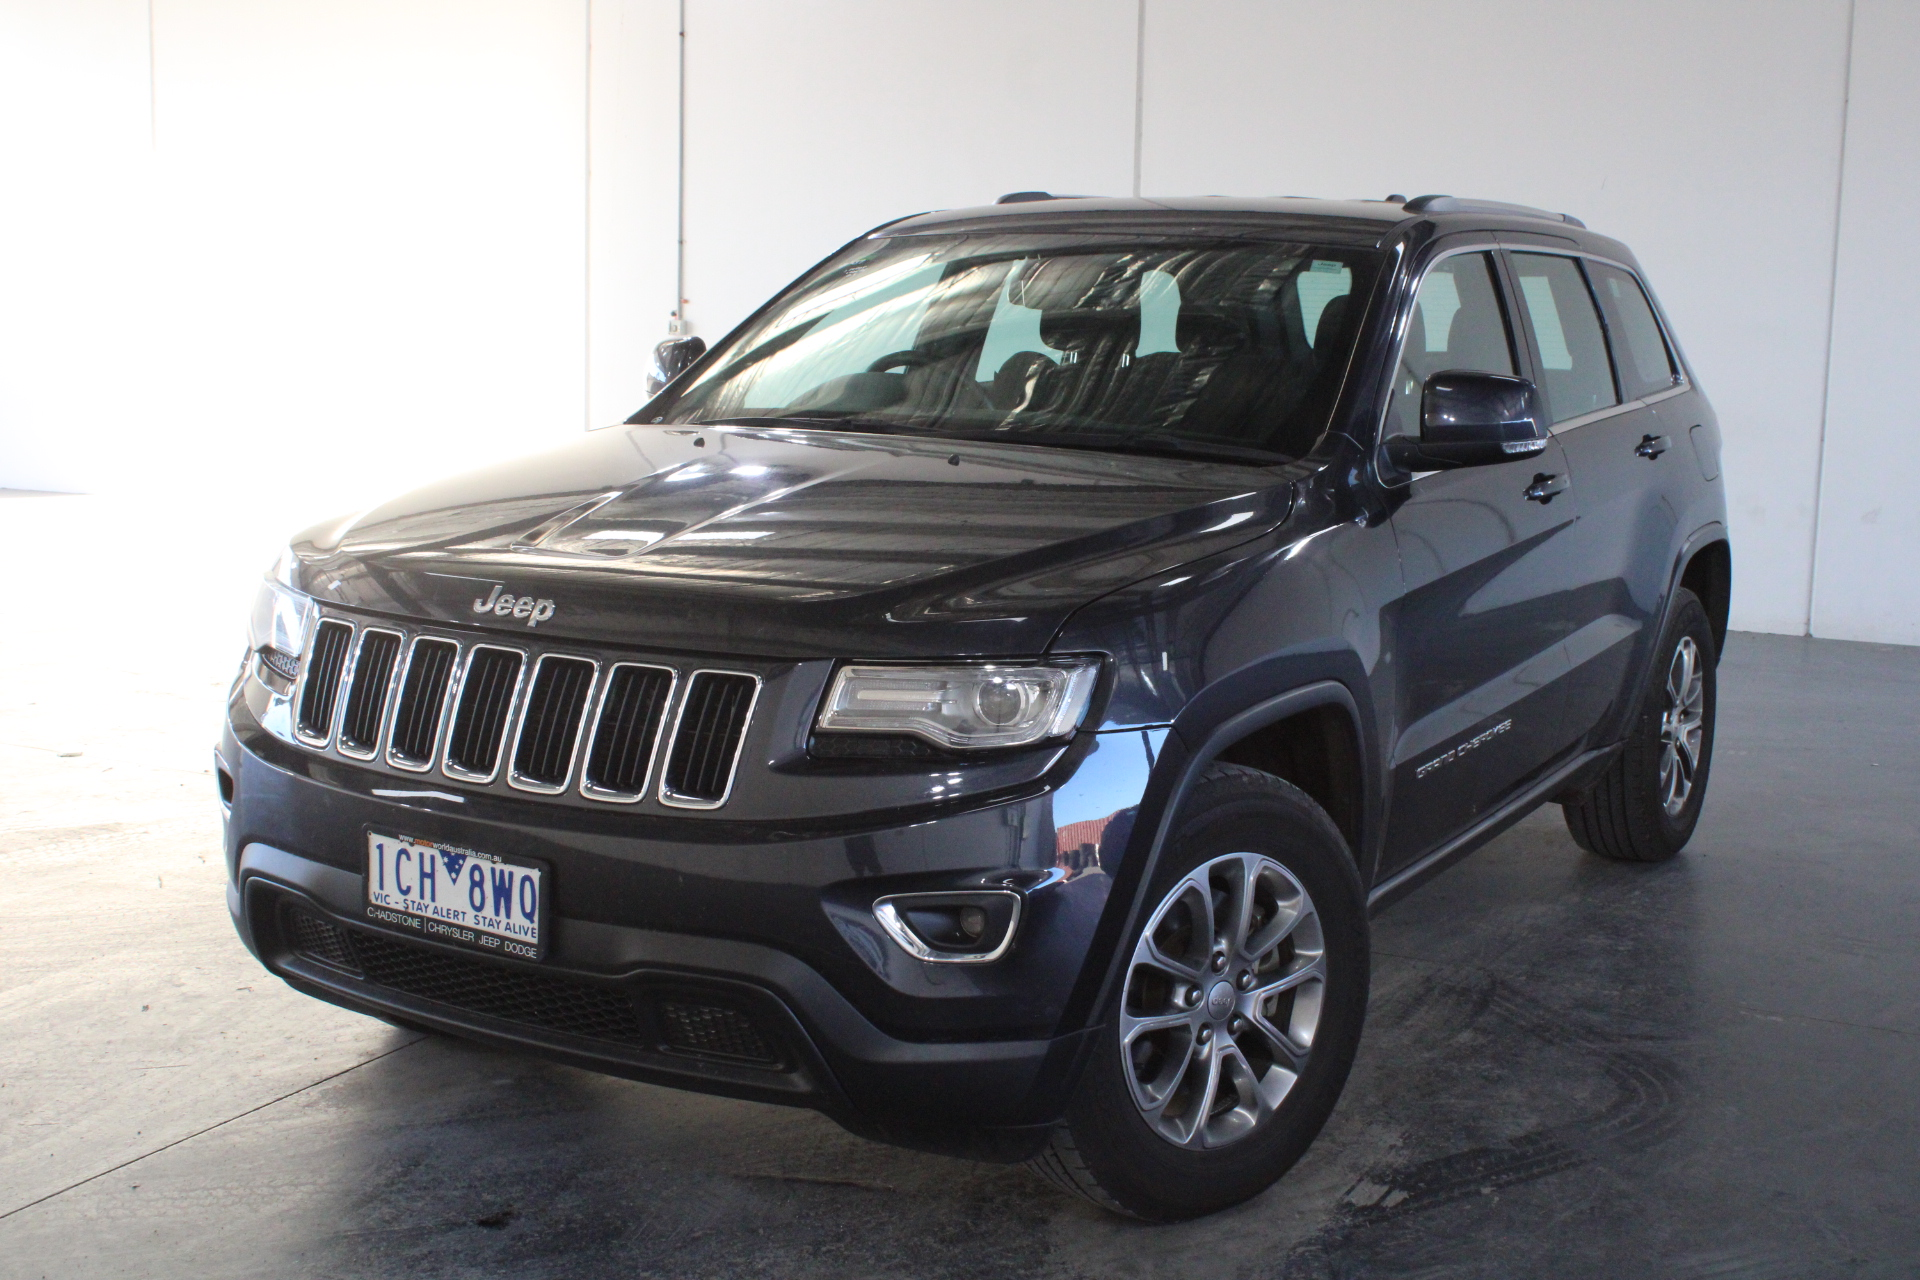 2014 Jeep Grand Cherokee Laredo (4x4) WK Automatic - 8 Speed Wagon